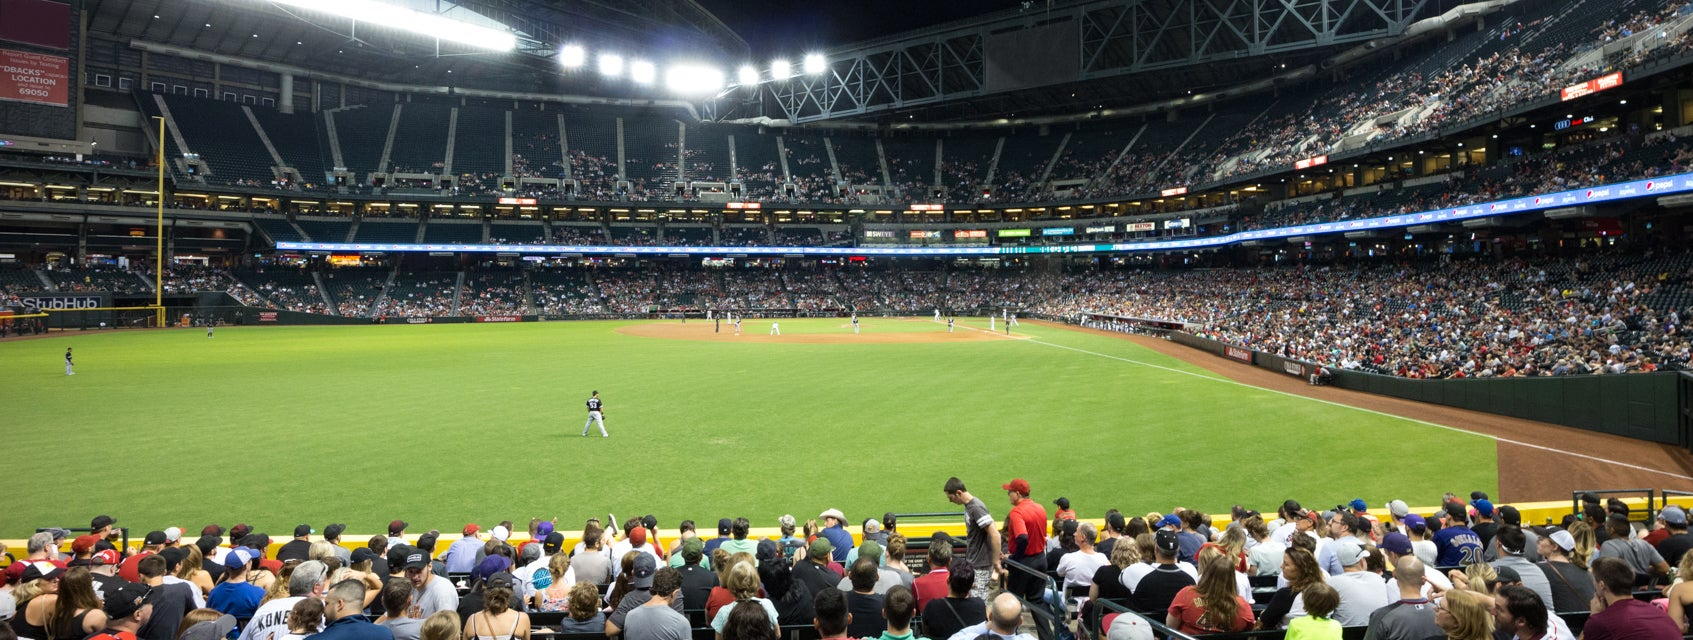 Seat view from Bleacher